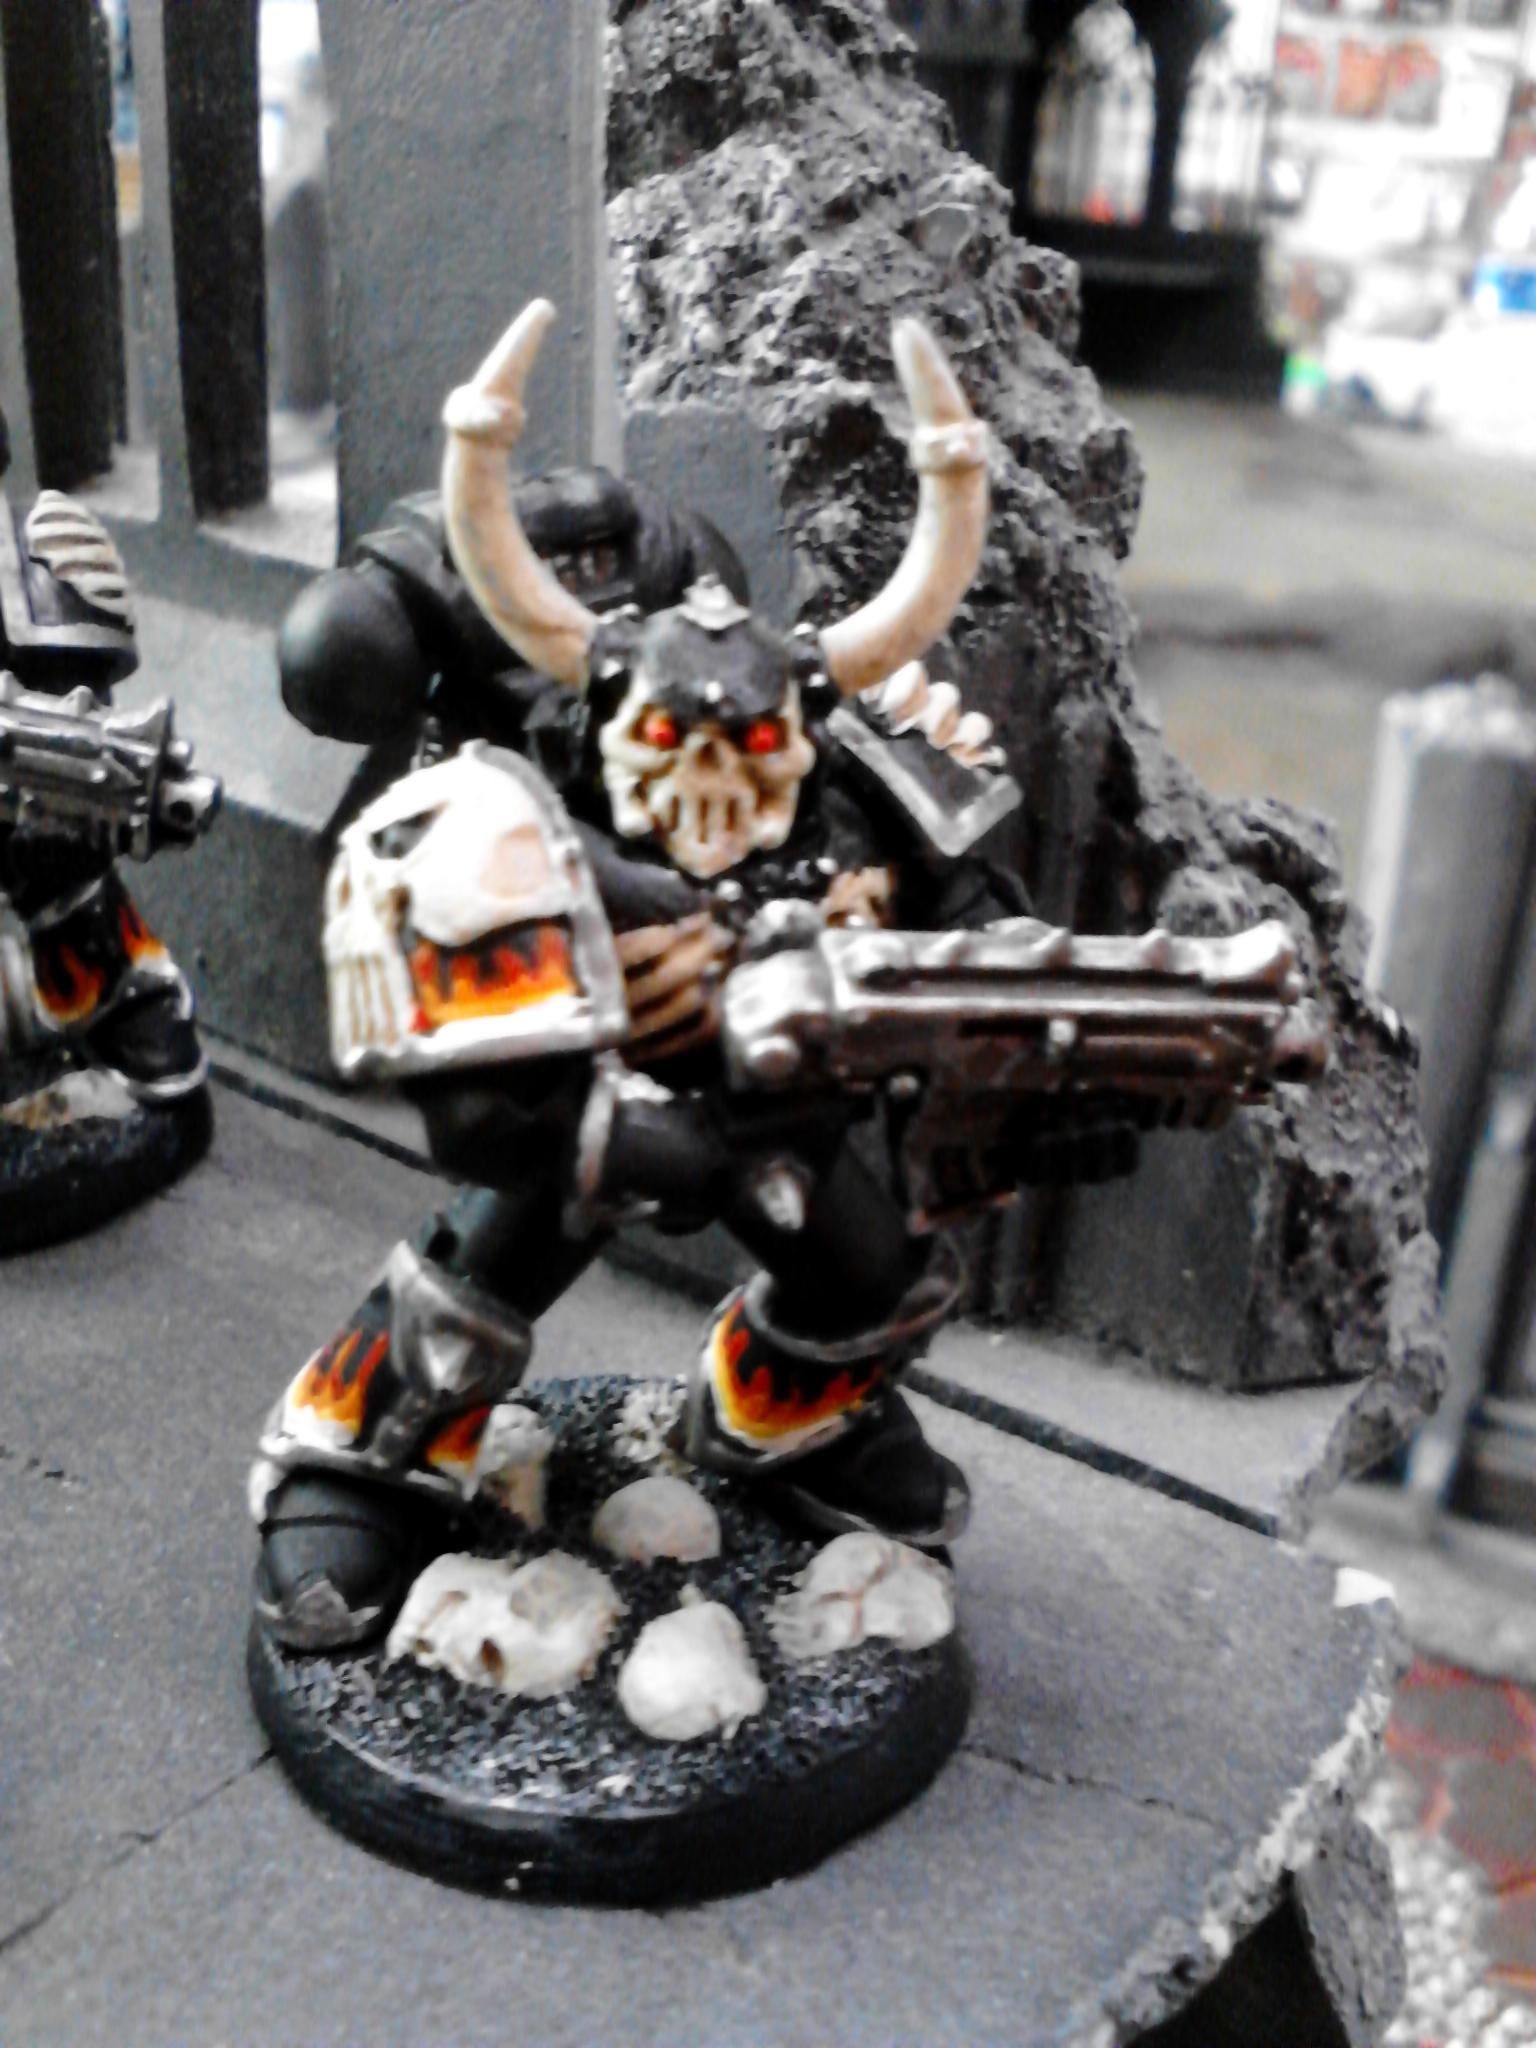 Bolter, Budget, Fire, Flames, Legion Of The Damned, Skull